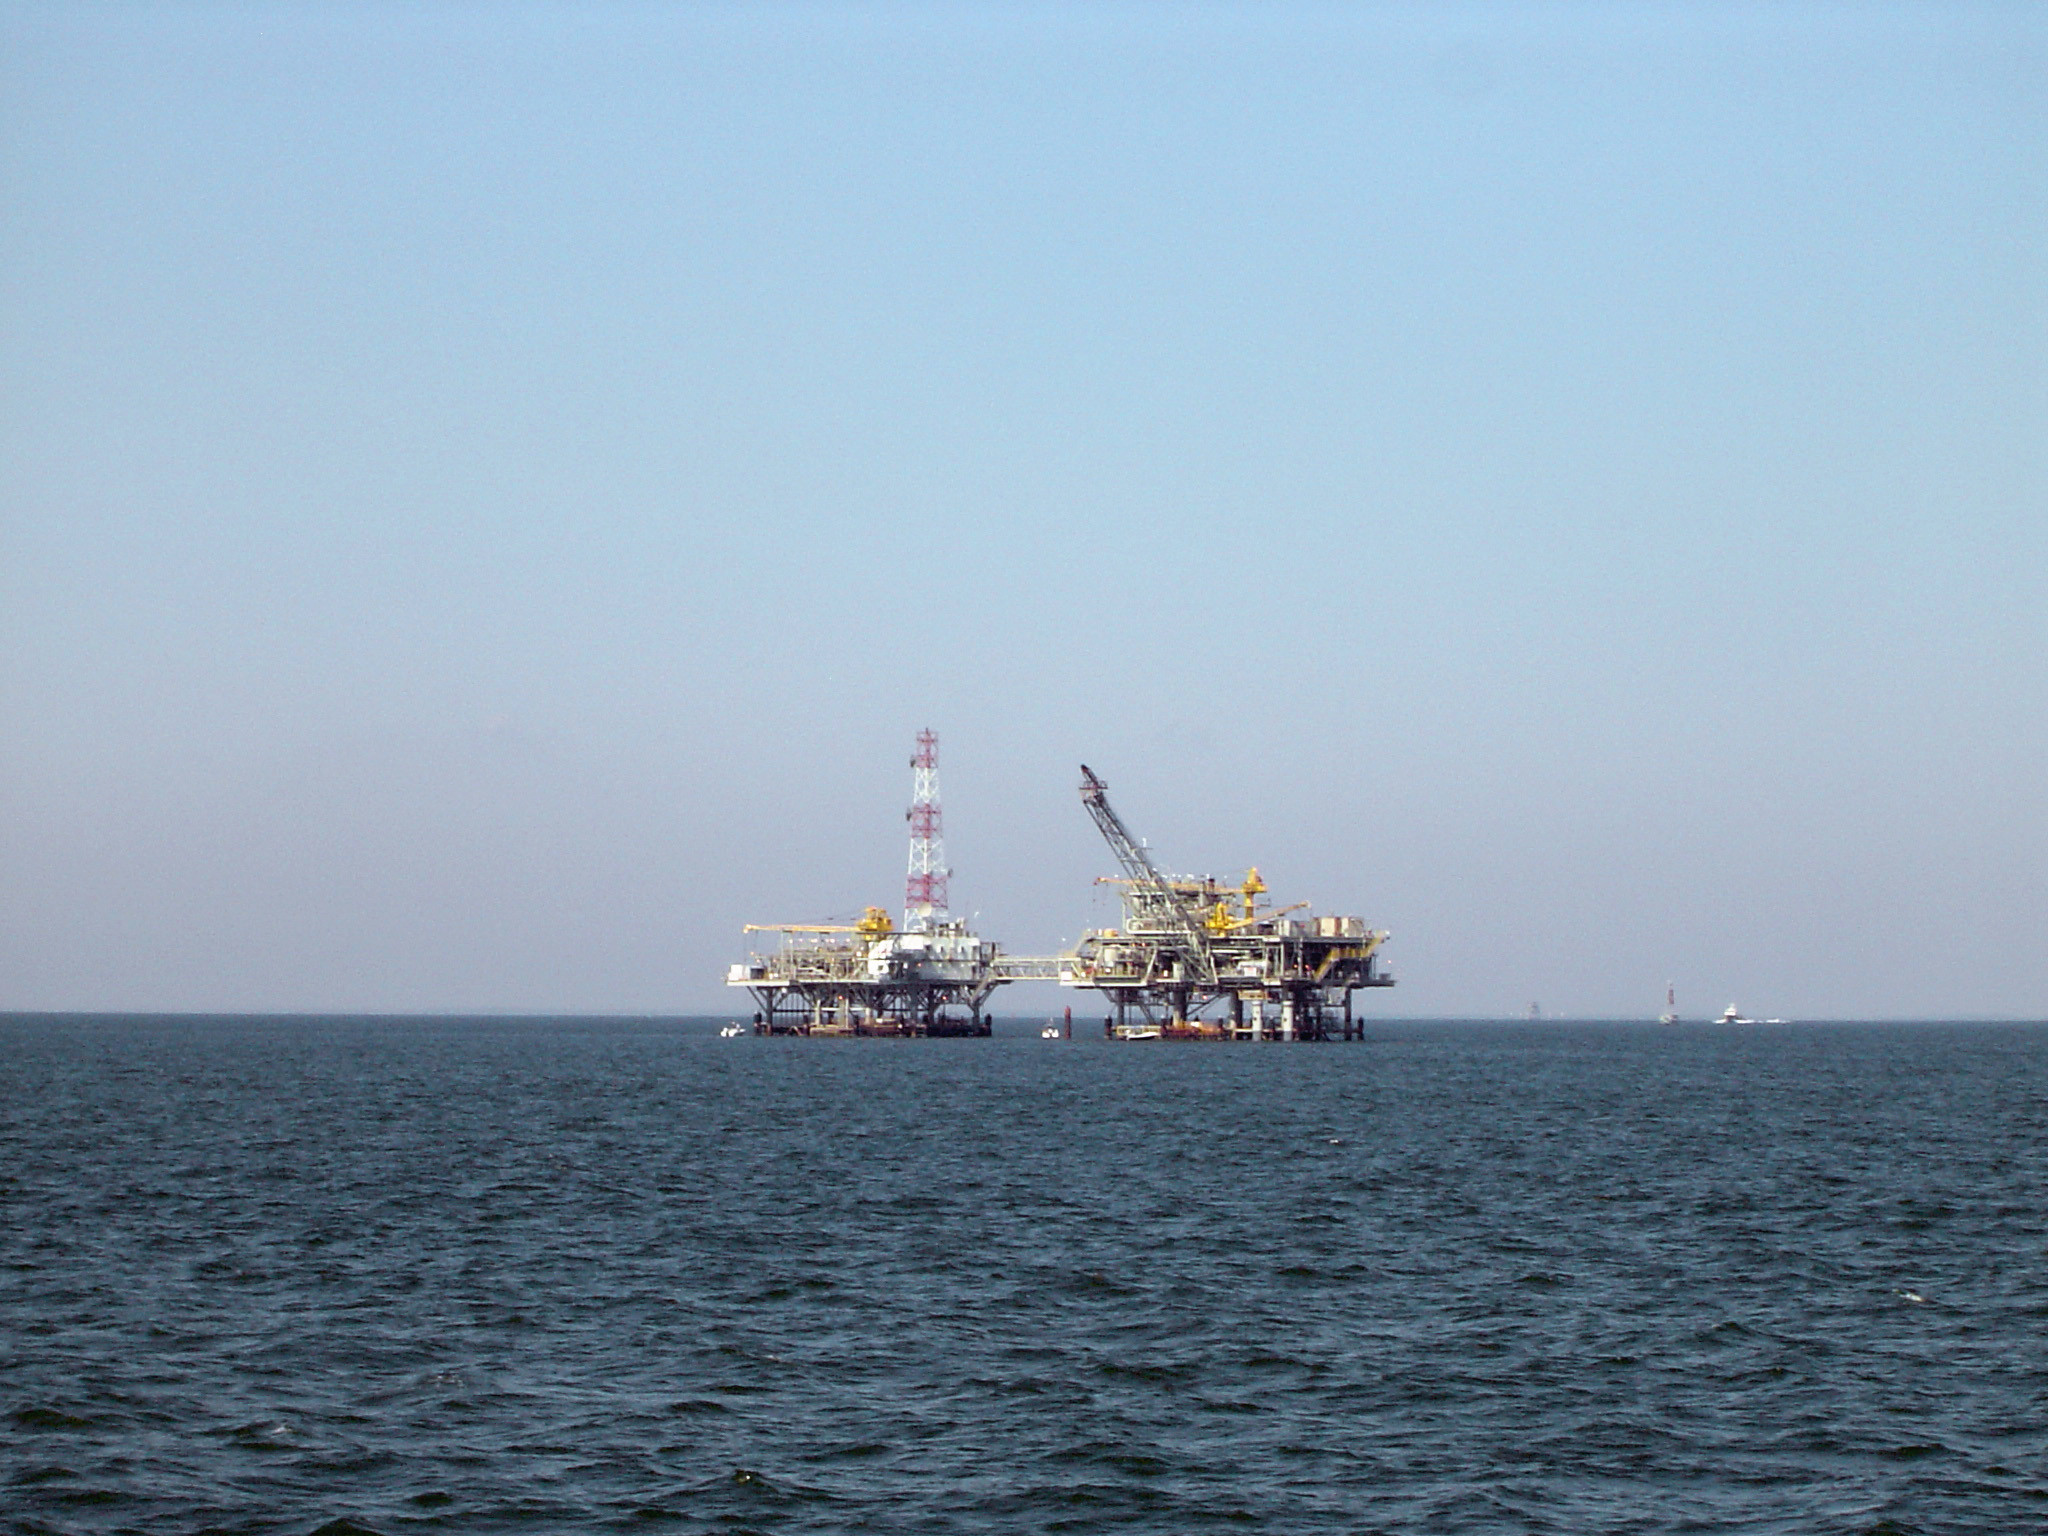 2048x1536 offshore oil and gas